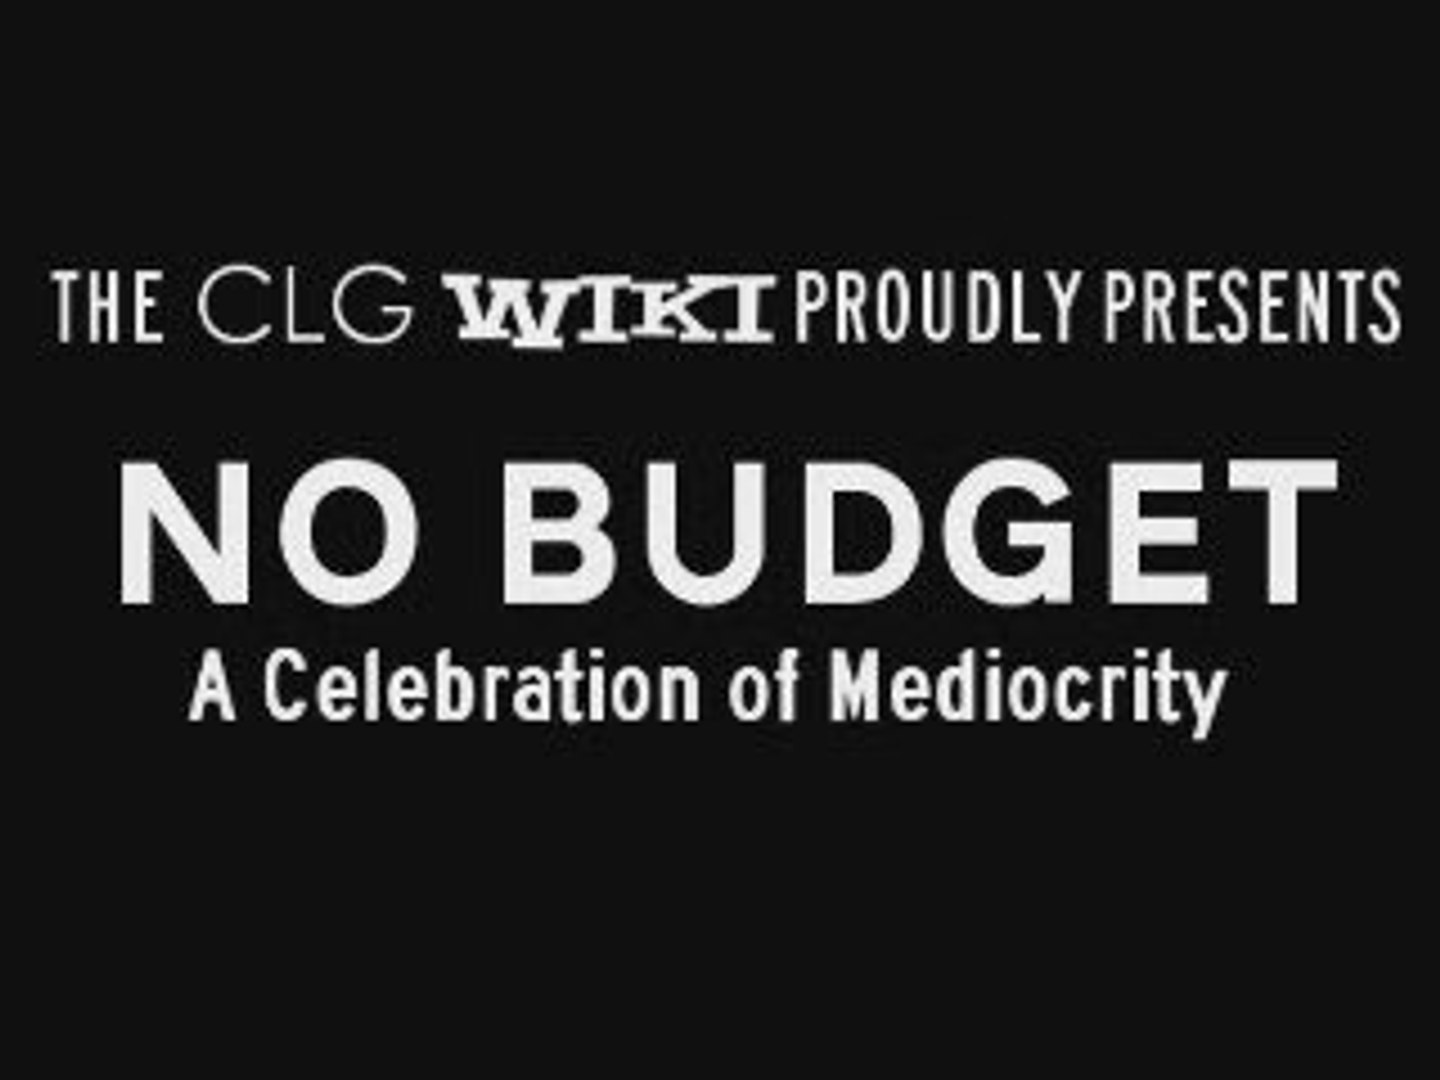 CLG Wiki September 2009 Promo: No Budget